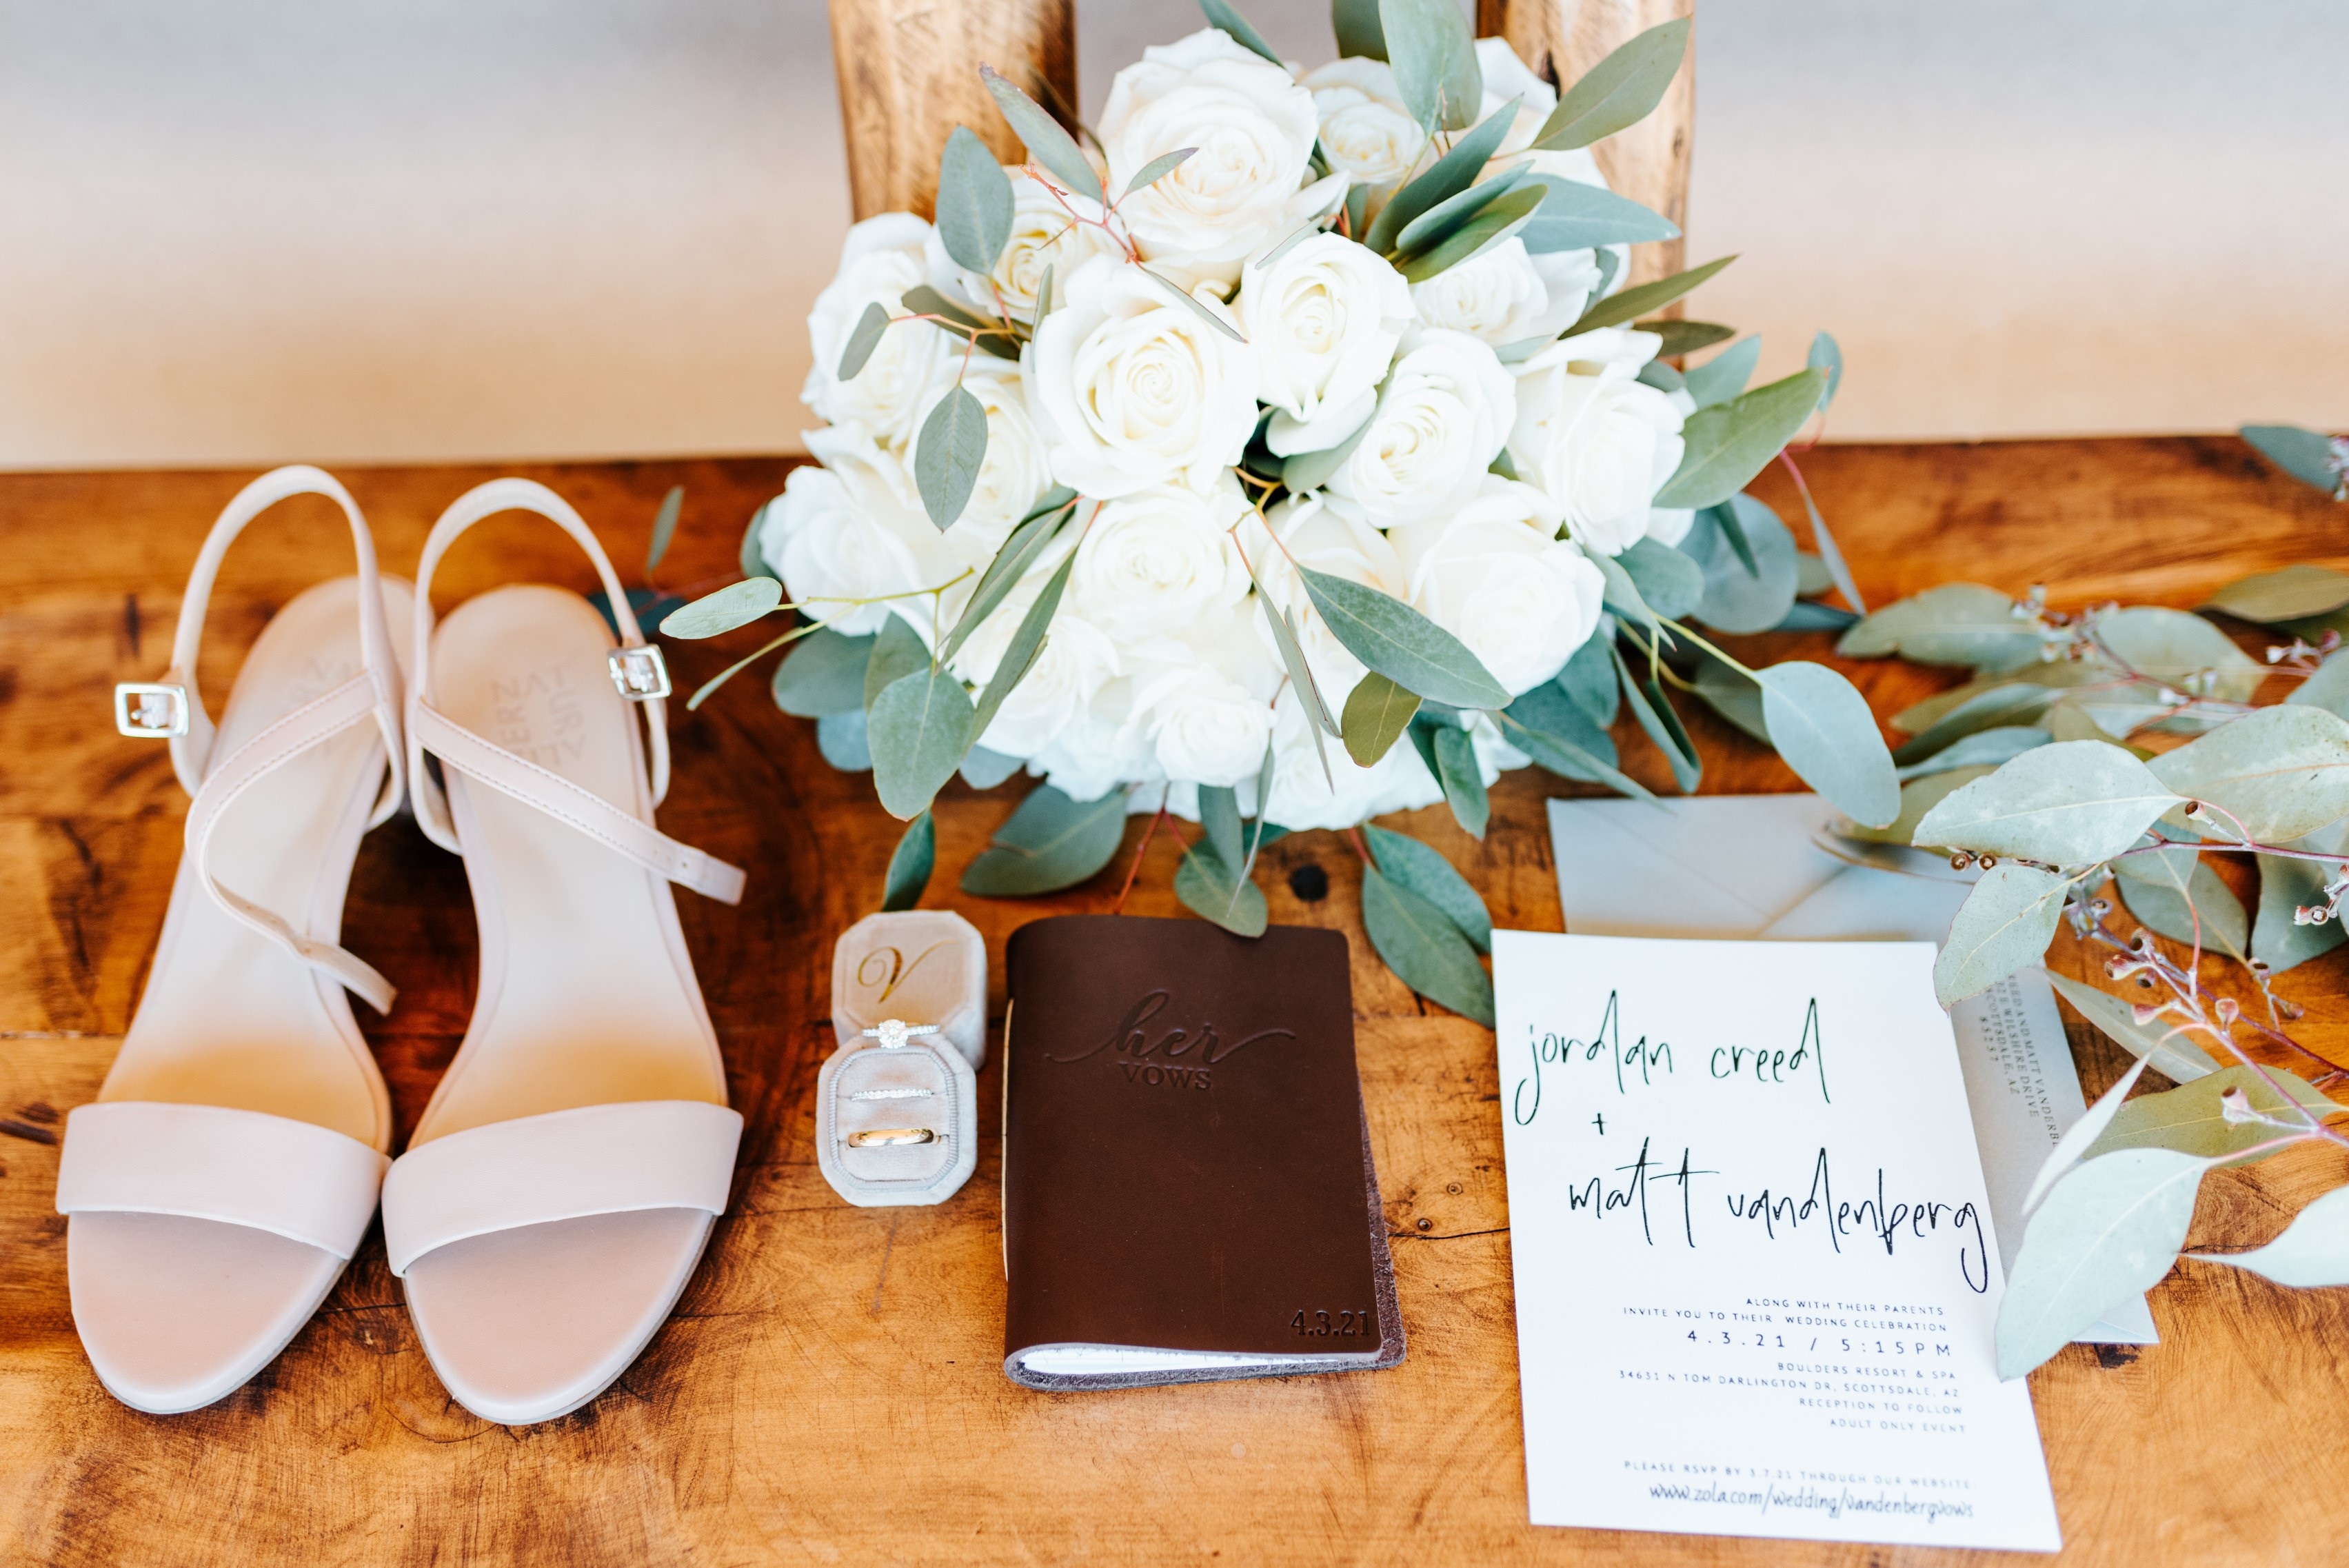 Shoes and miscellaneous idecor on table with a bouquet